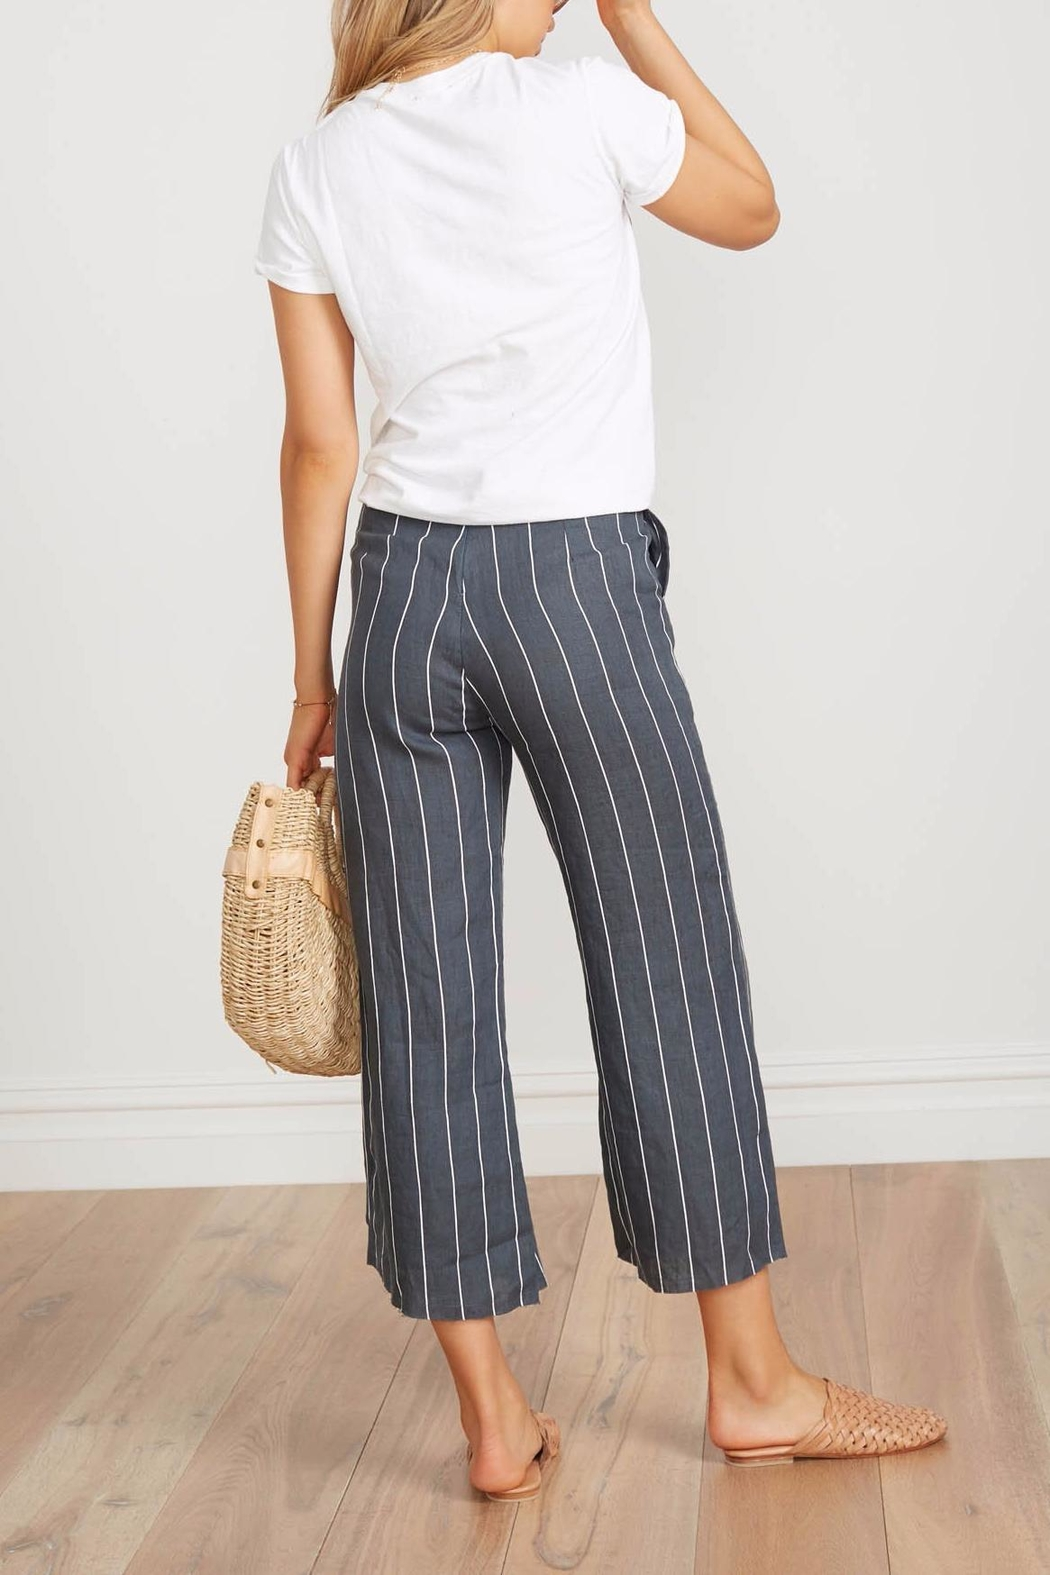 Faithfull The Brand Striped Linen Culottes - Front Full Image